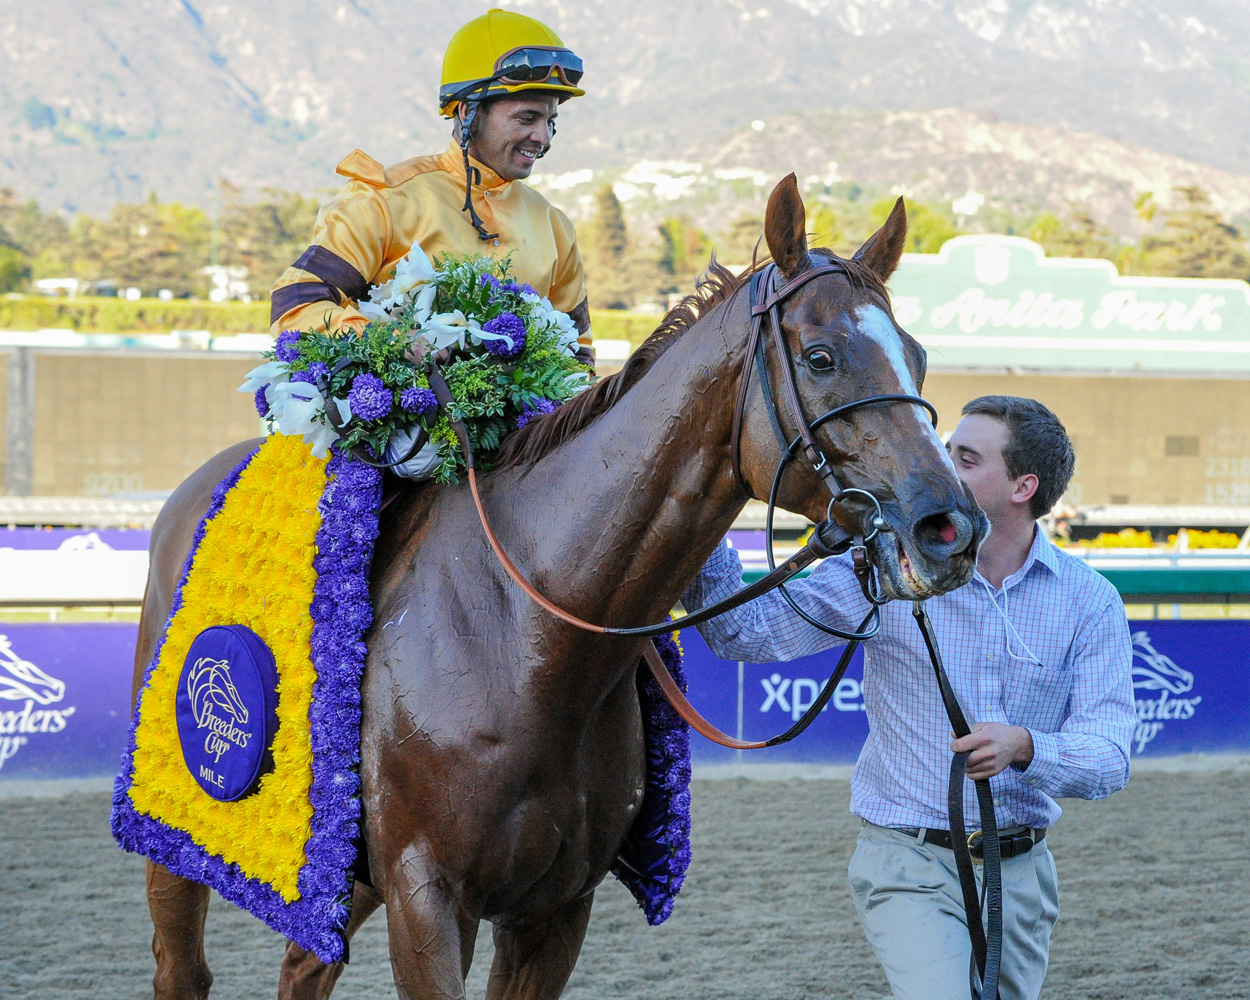 Wise Dan (Jose Lezcano up) after winning the 2013 Breeders Cup' Mile at Santa Anita, his second consecutive Breeders' Cup victory (Bob Mayberger)